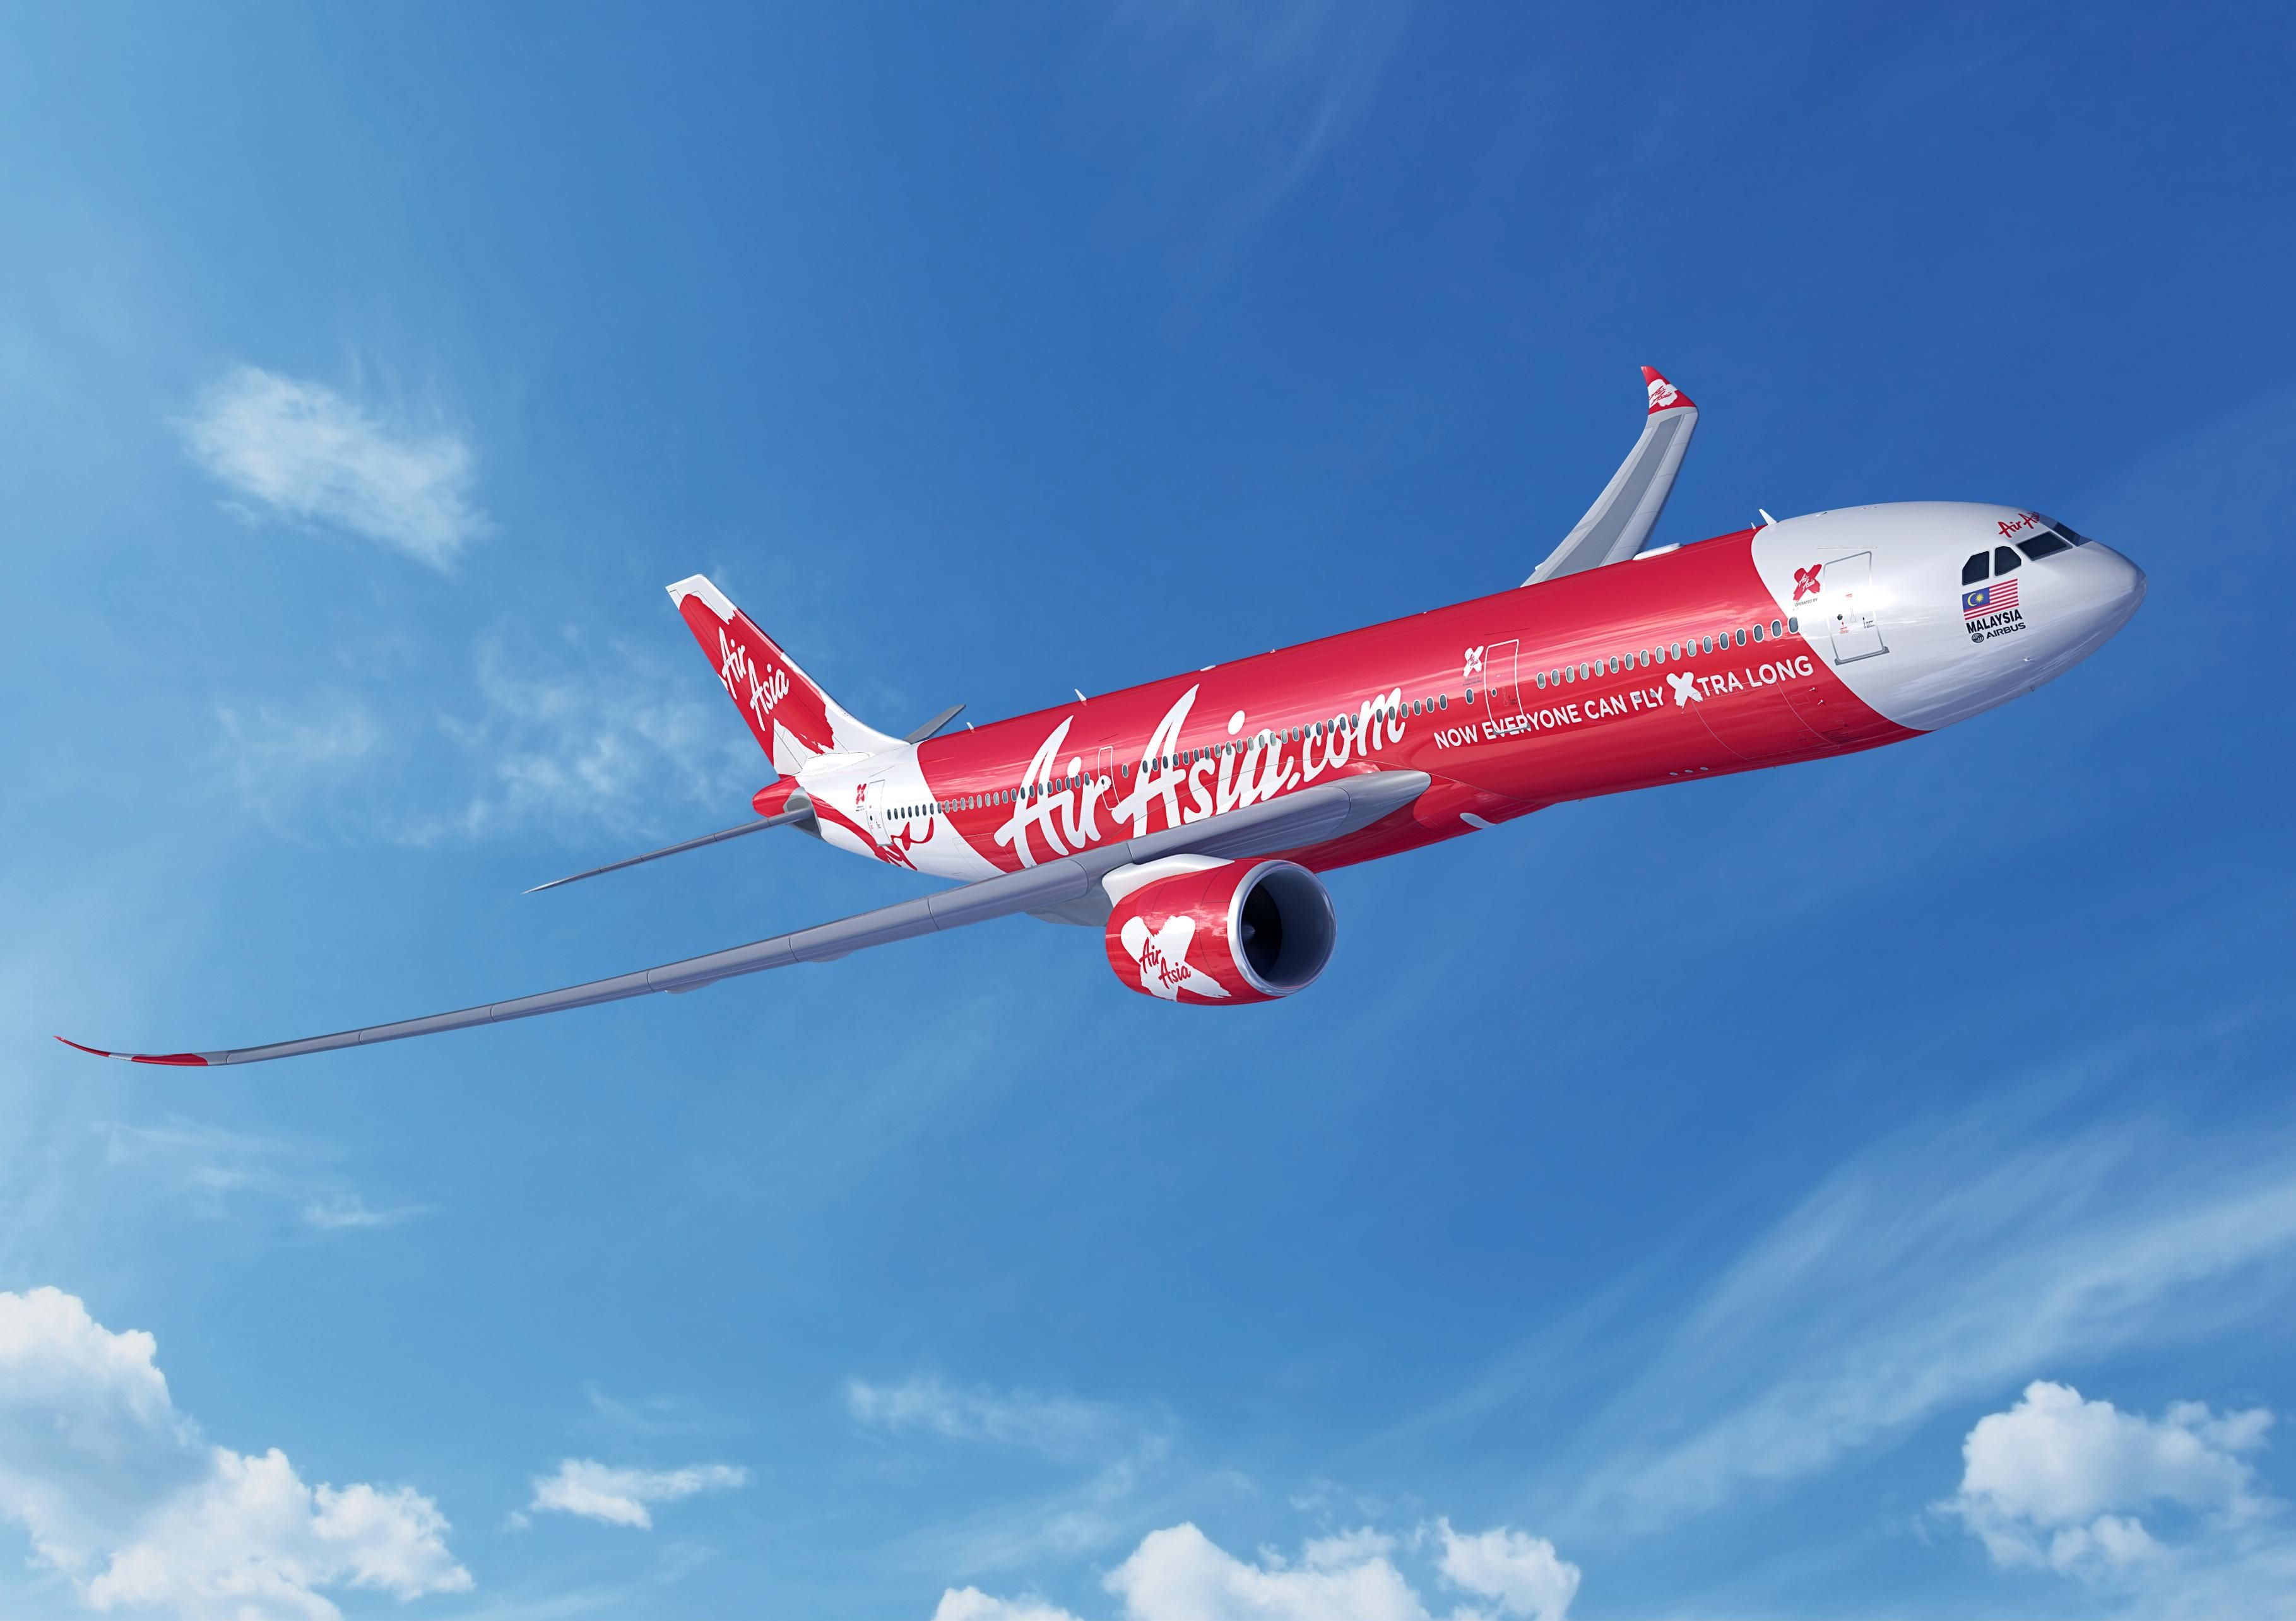 Airasia X Is A Low Cost Airlines Service Provider Offering Cheap Airline Tickets With Easy Airticket Booking Options Airline Tickets Airlines Cheap Airlines